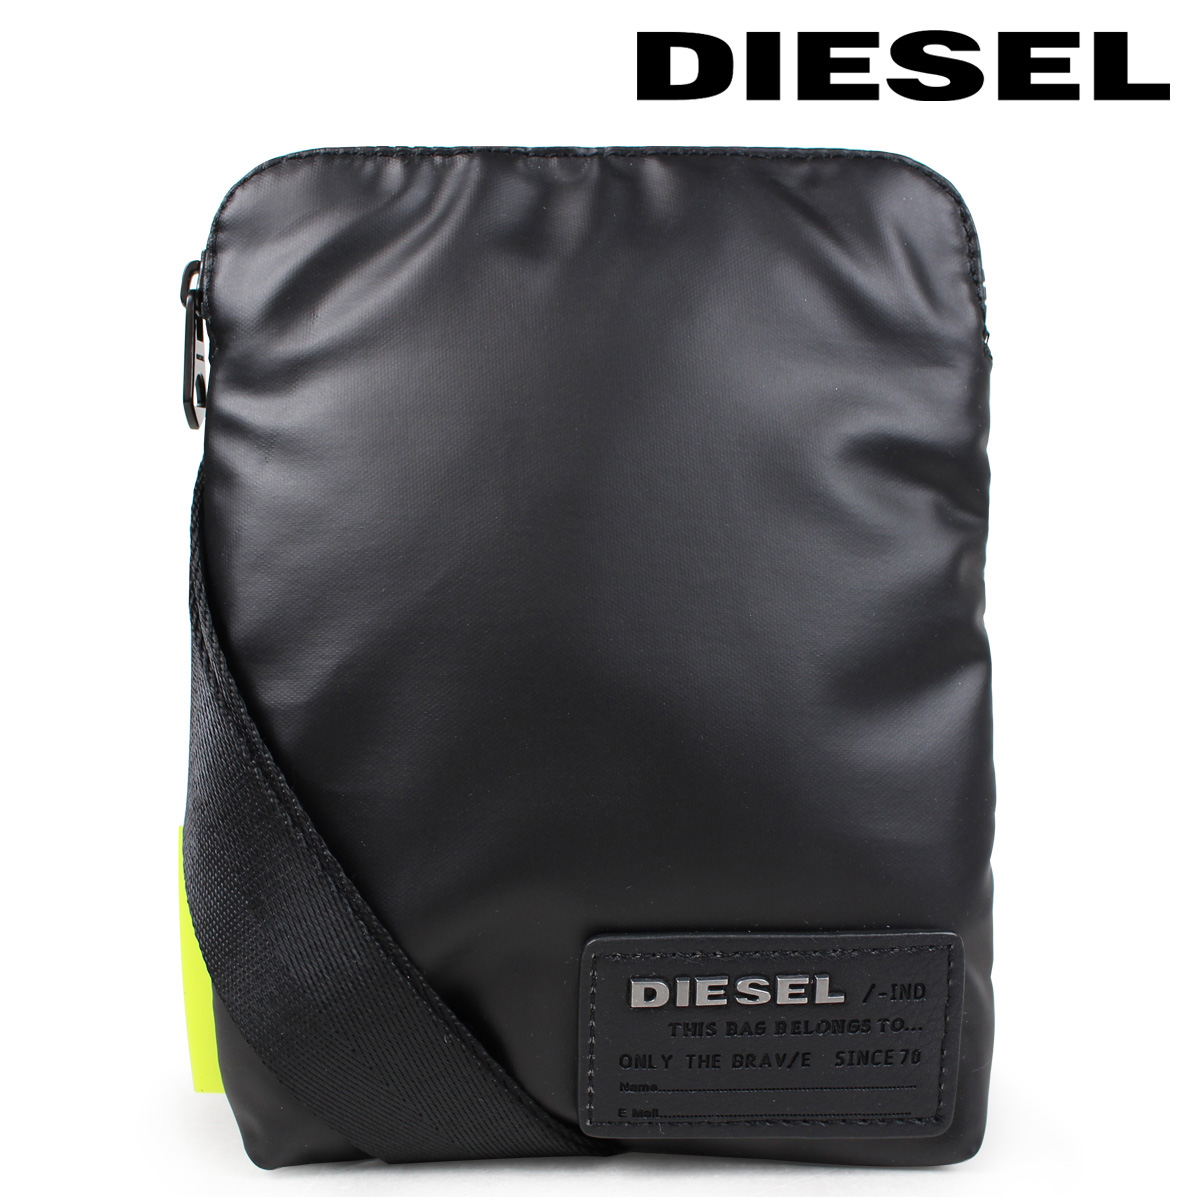 638962be7d54 Allsports diesel discover uz discover smallcross diesel bag men gap dis  shoulder bag black shinnyu load